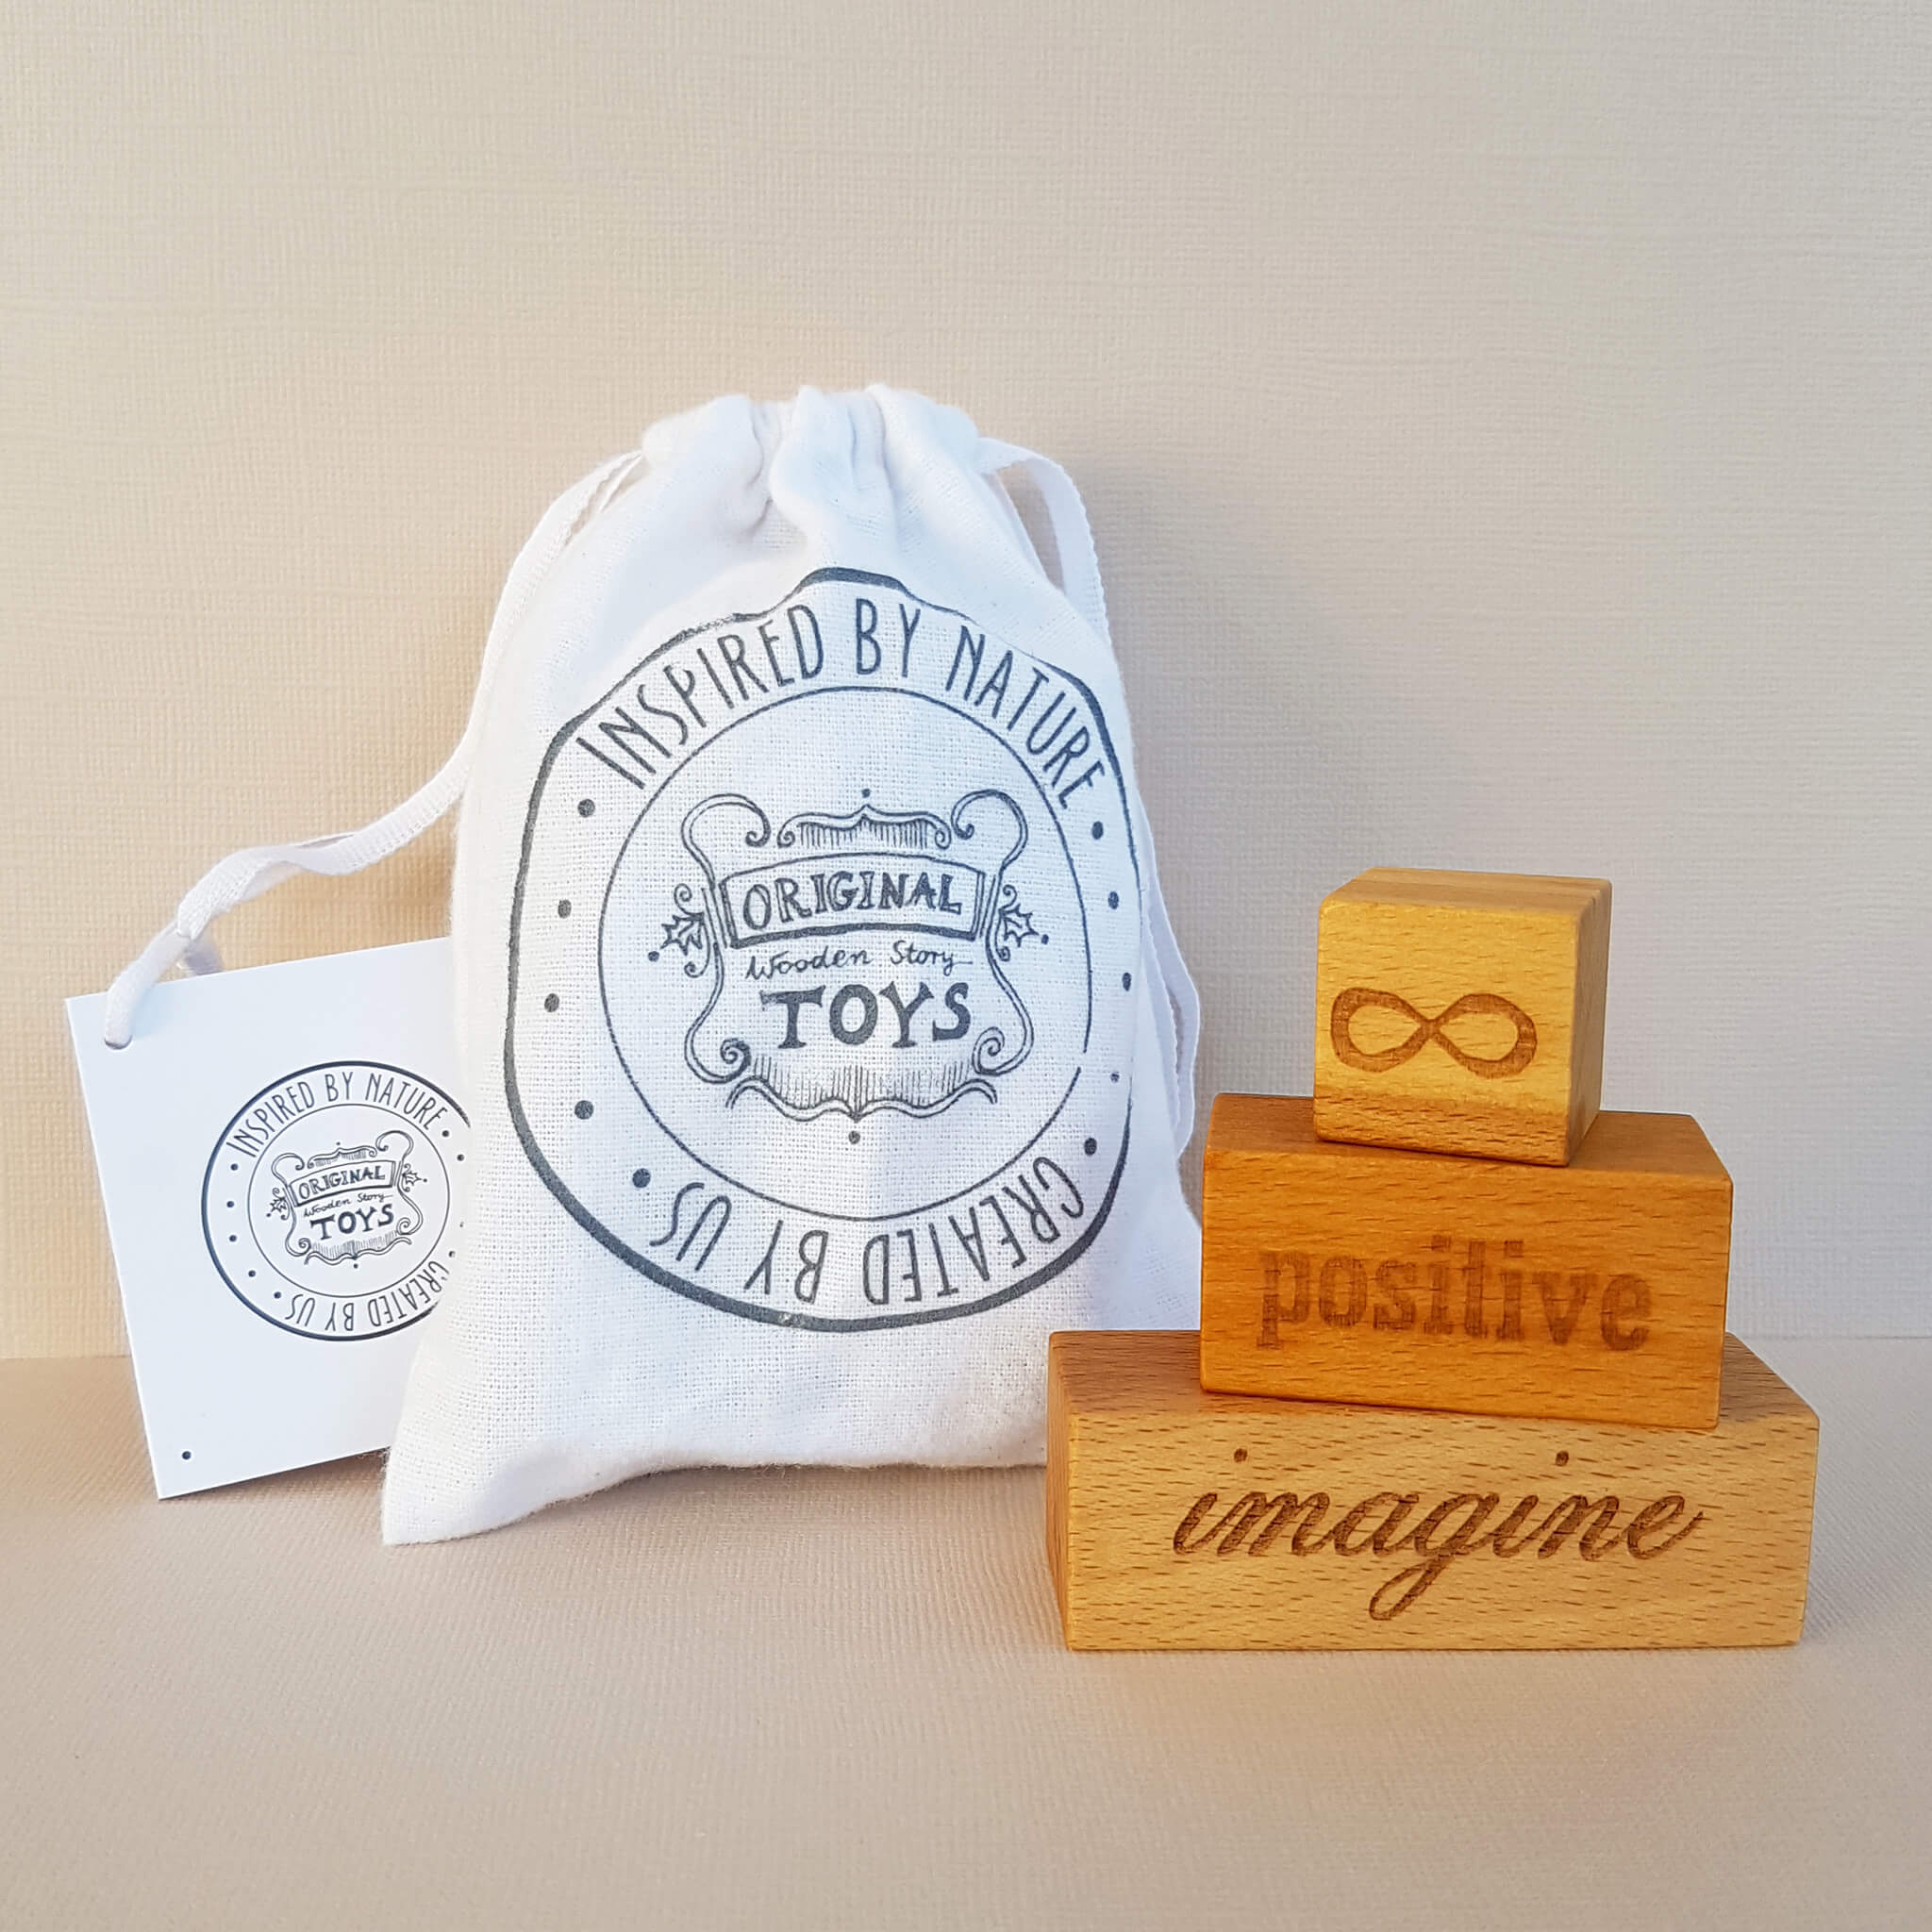 Wooden Story On my Mind - Positive Imagine 3 Engraved Wood Blocks - Unik by Nature